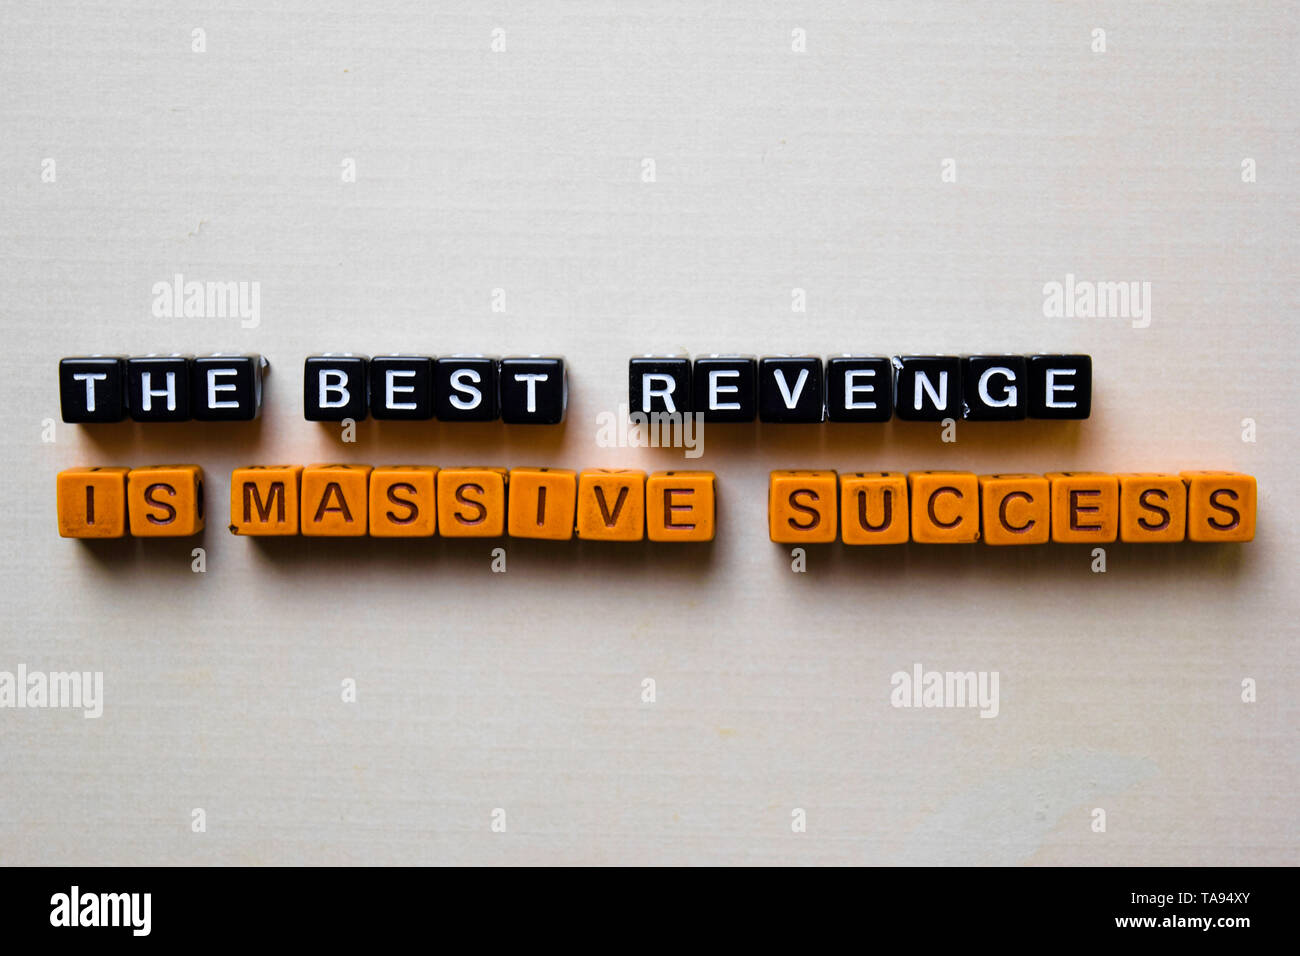 Success Is The Best Revenge Stock Photos & Success Is The